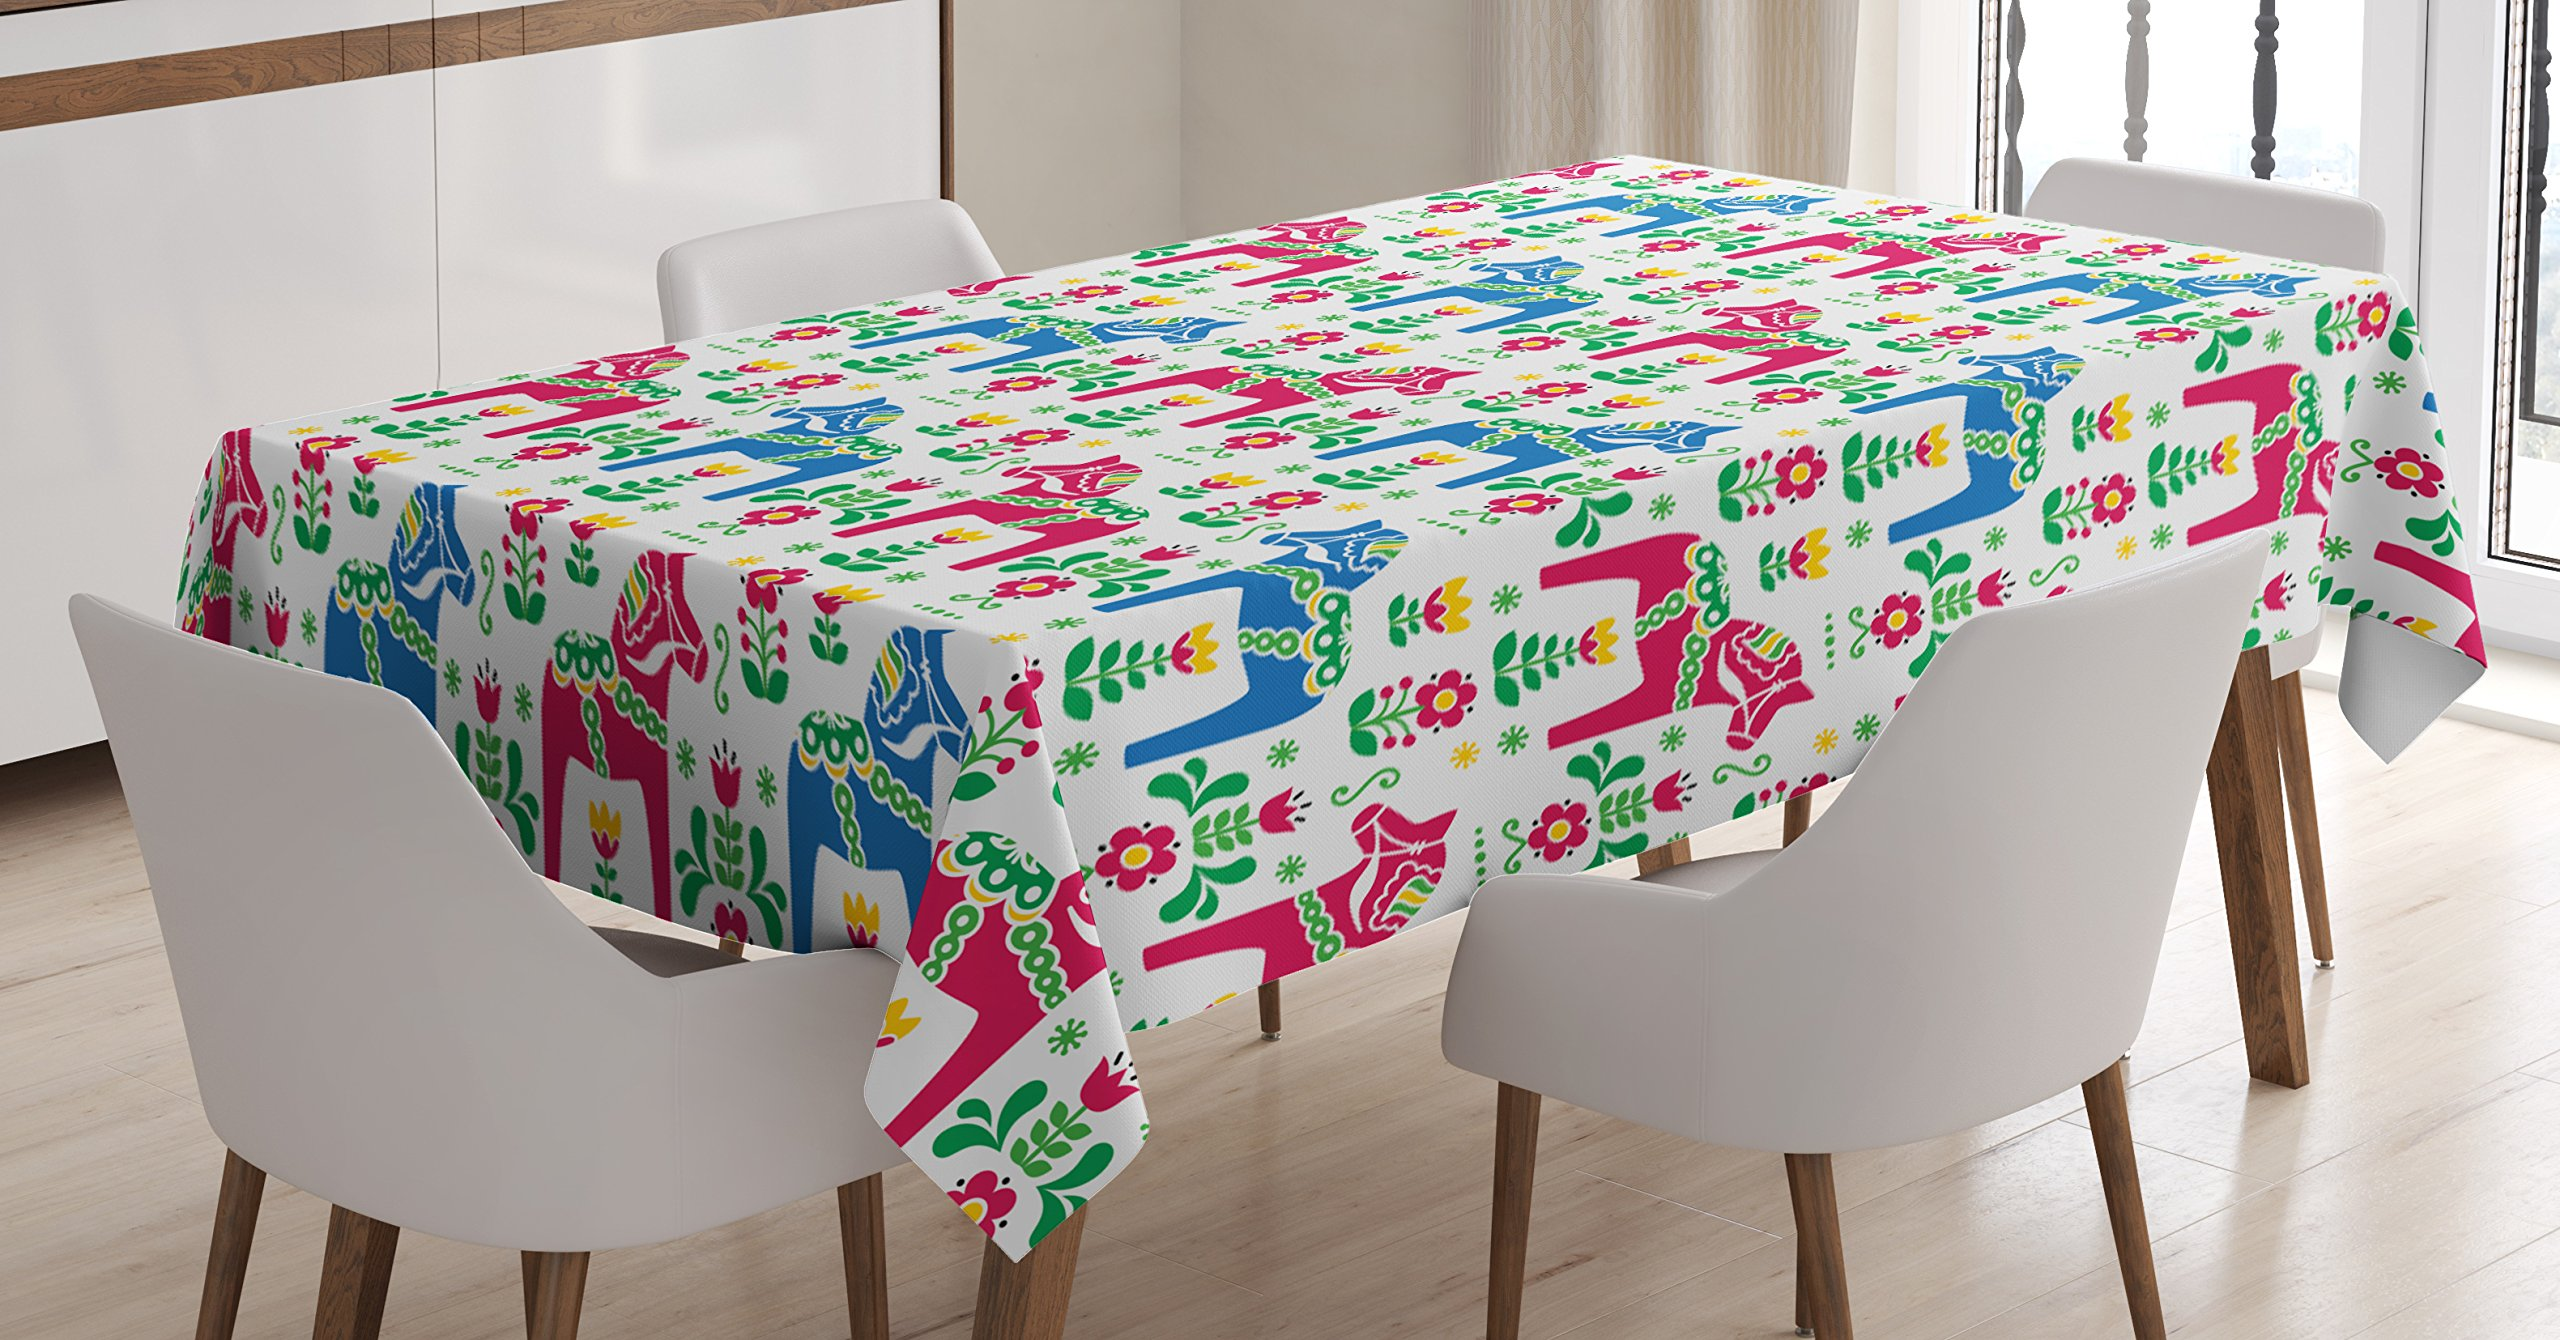 Ambesonne Horses Tablecloth, Classic Swedish Dalecarlian Coral Azure Blue Animals and Green Floral Arrangement, Dining Room Kitchen Rectangular Table Cover, 60 W X 84 L inches, Multicolor